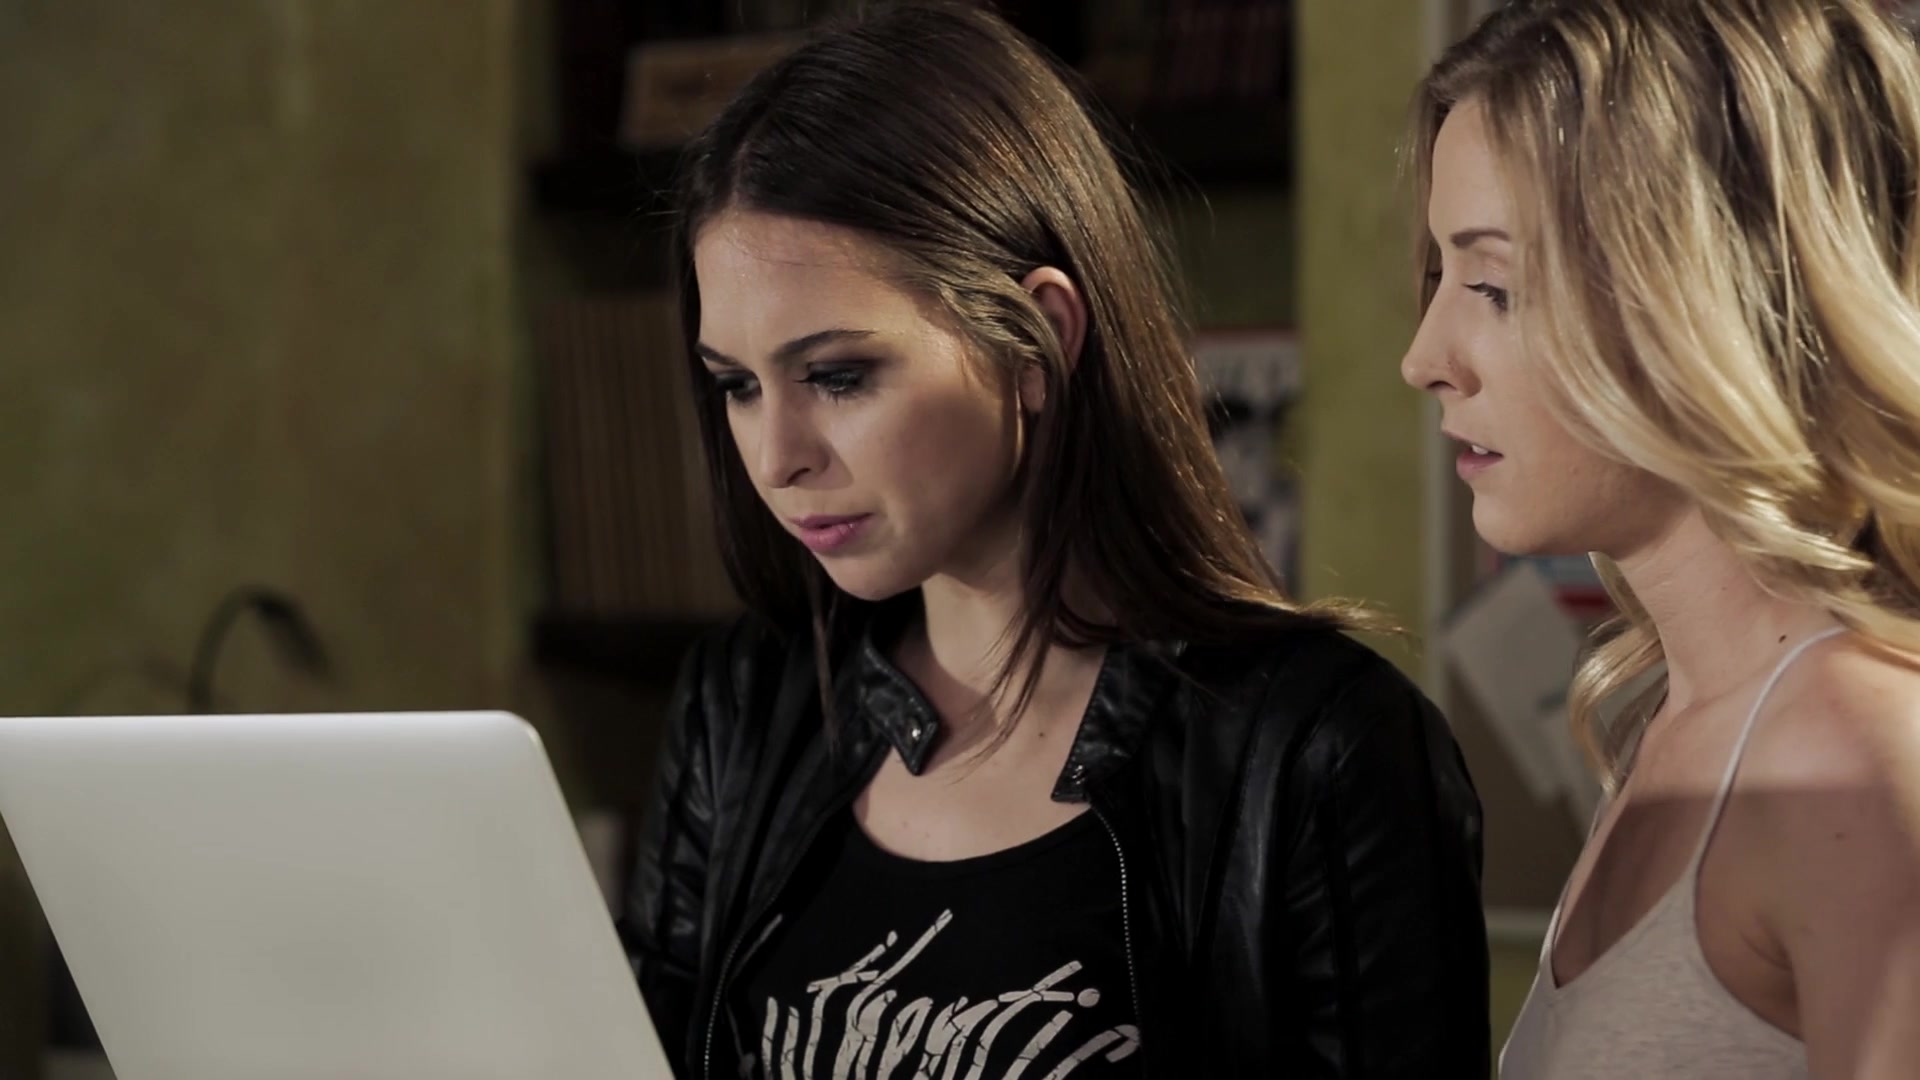 Scene with Reena Sky and Riley Reid - image 2 out of 20